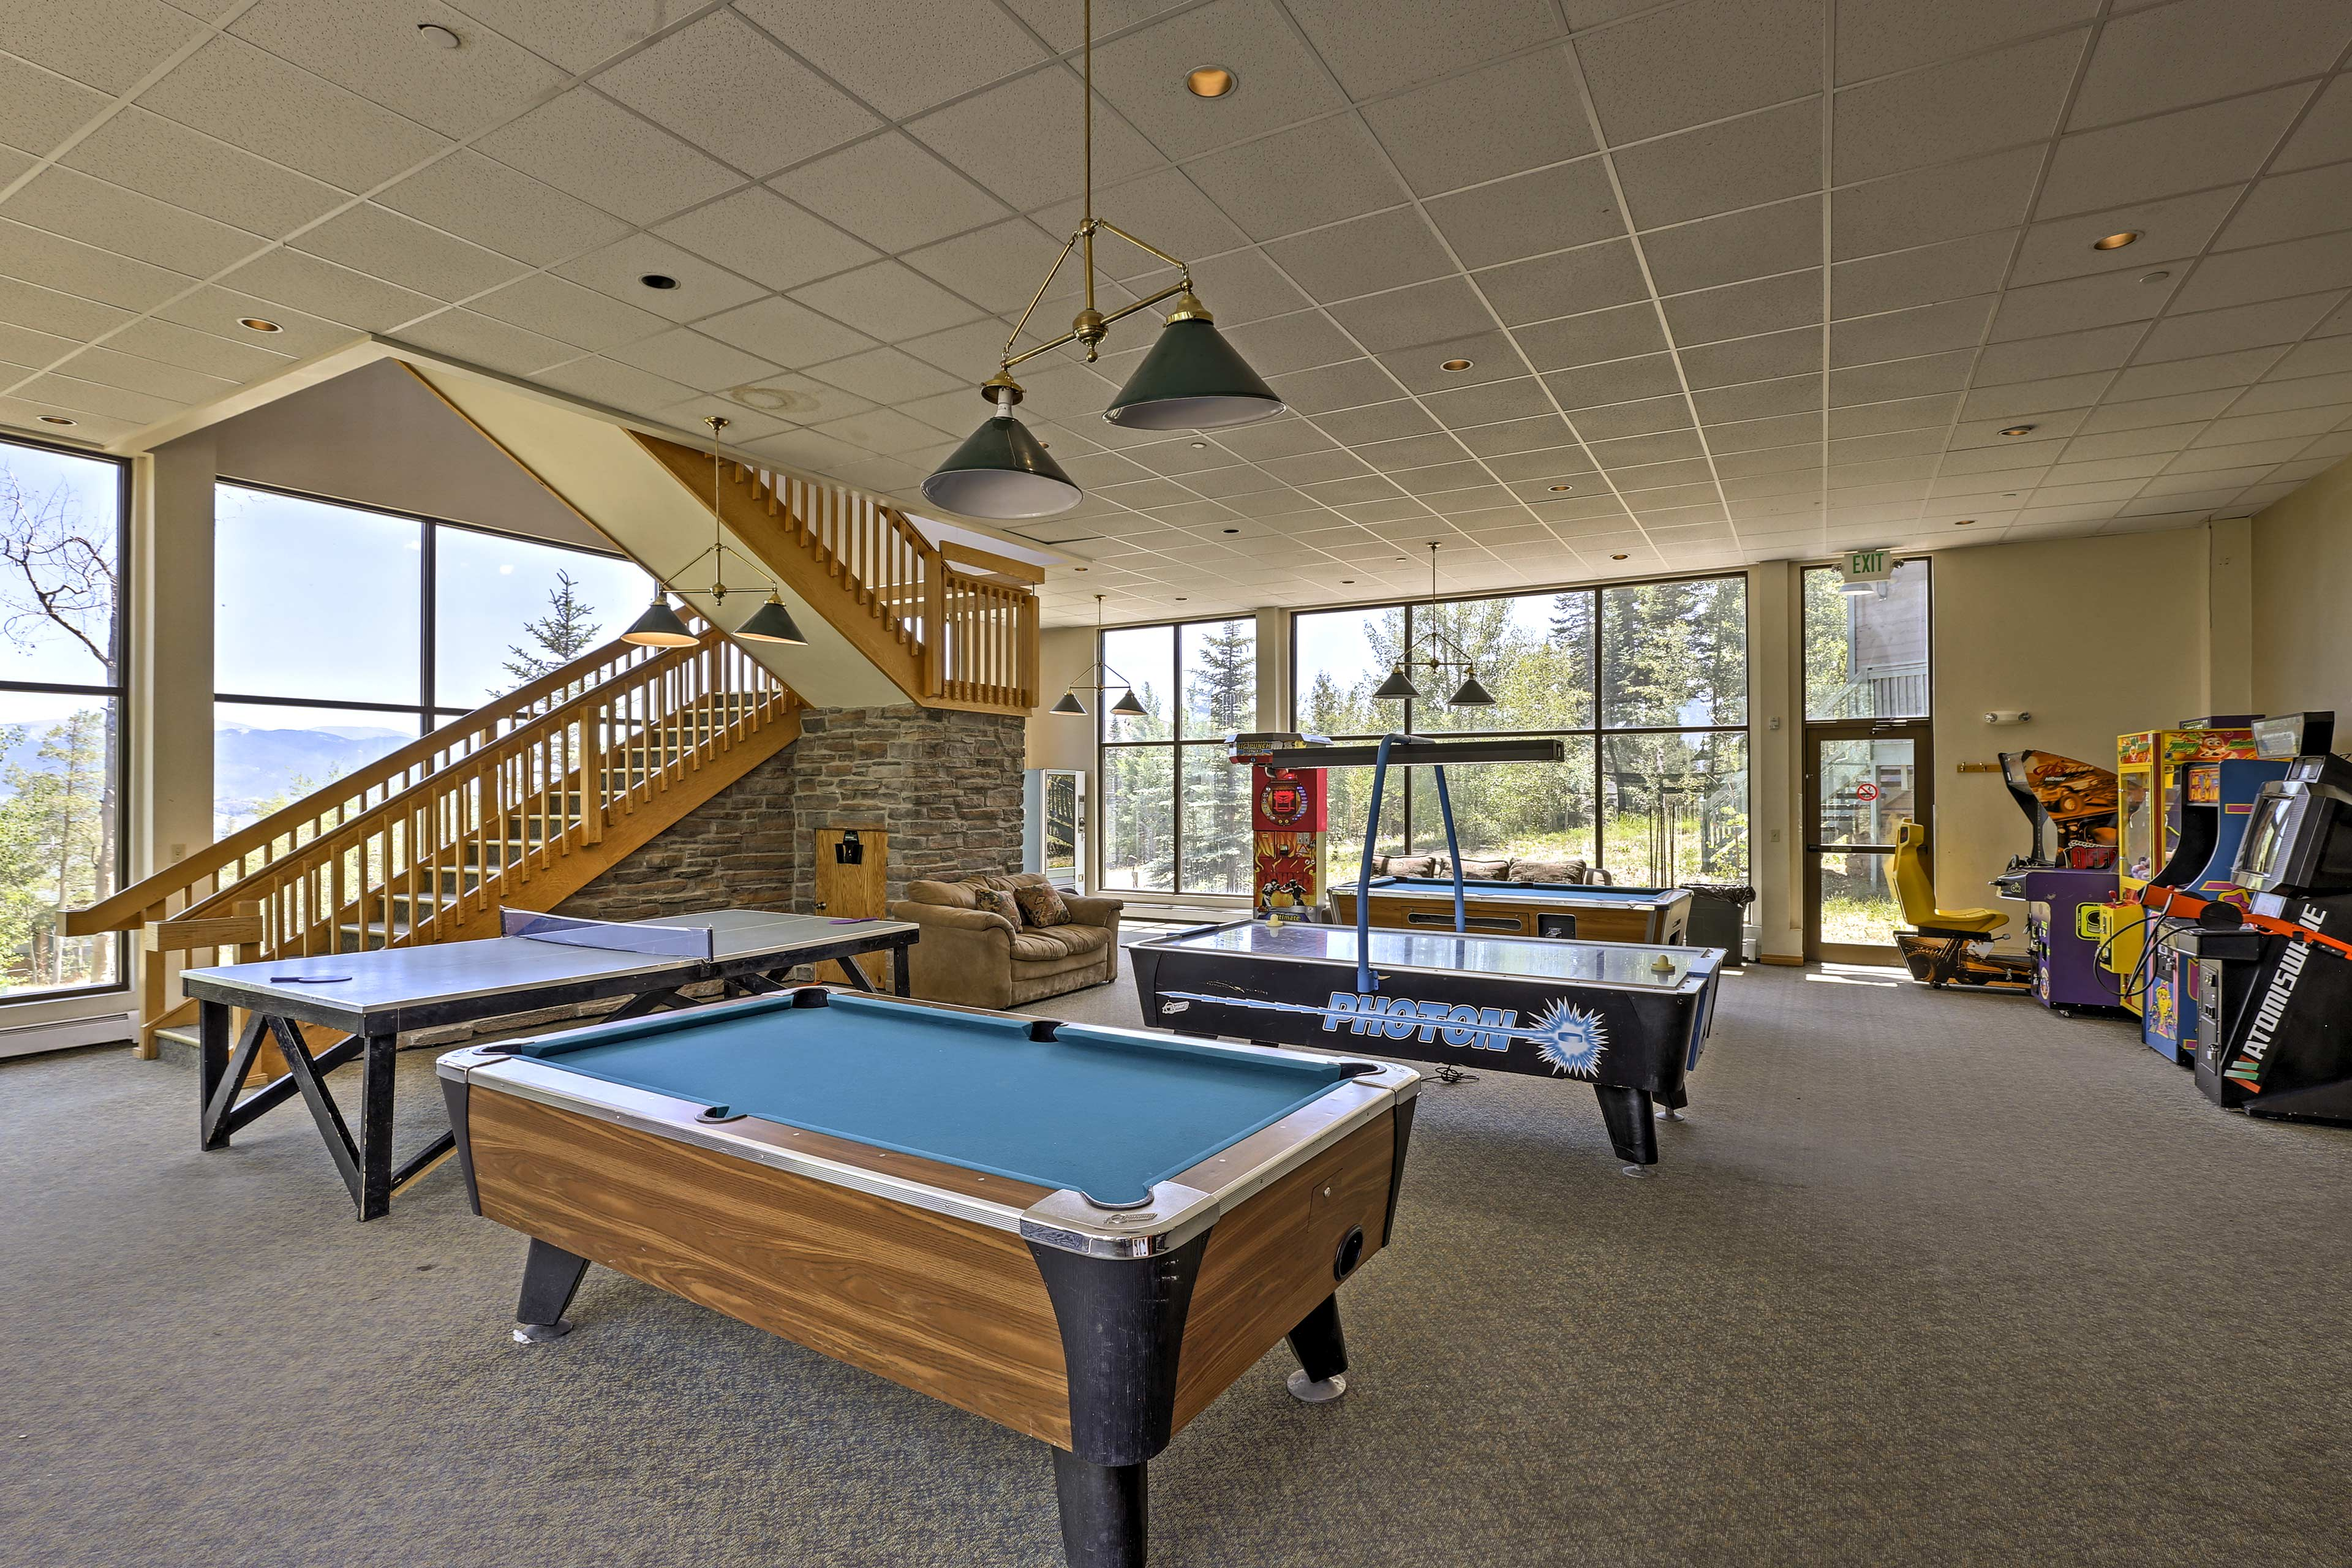 You'll love the downstairs game room/arcade!